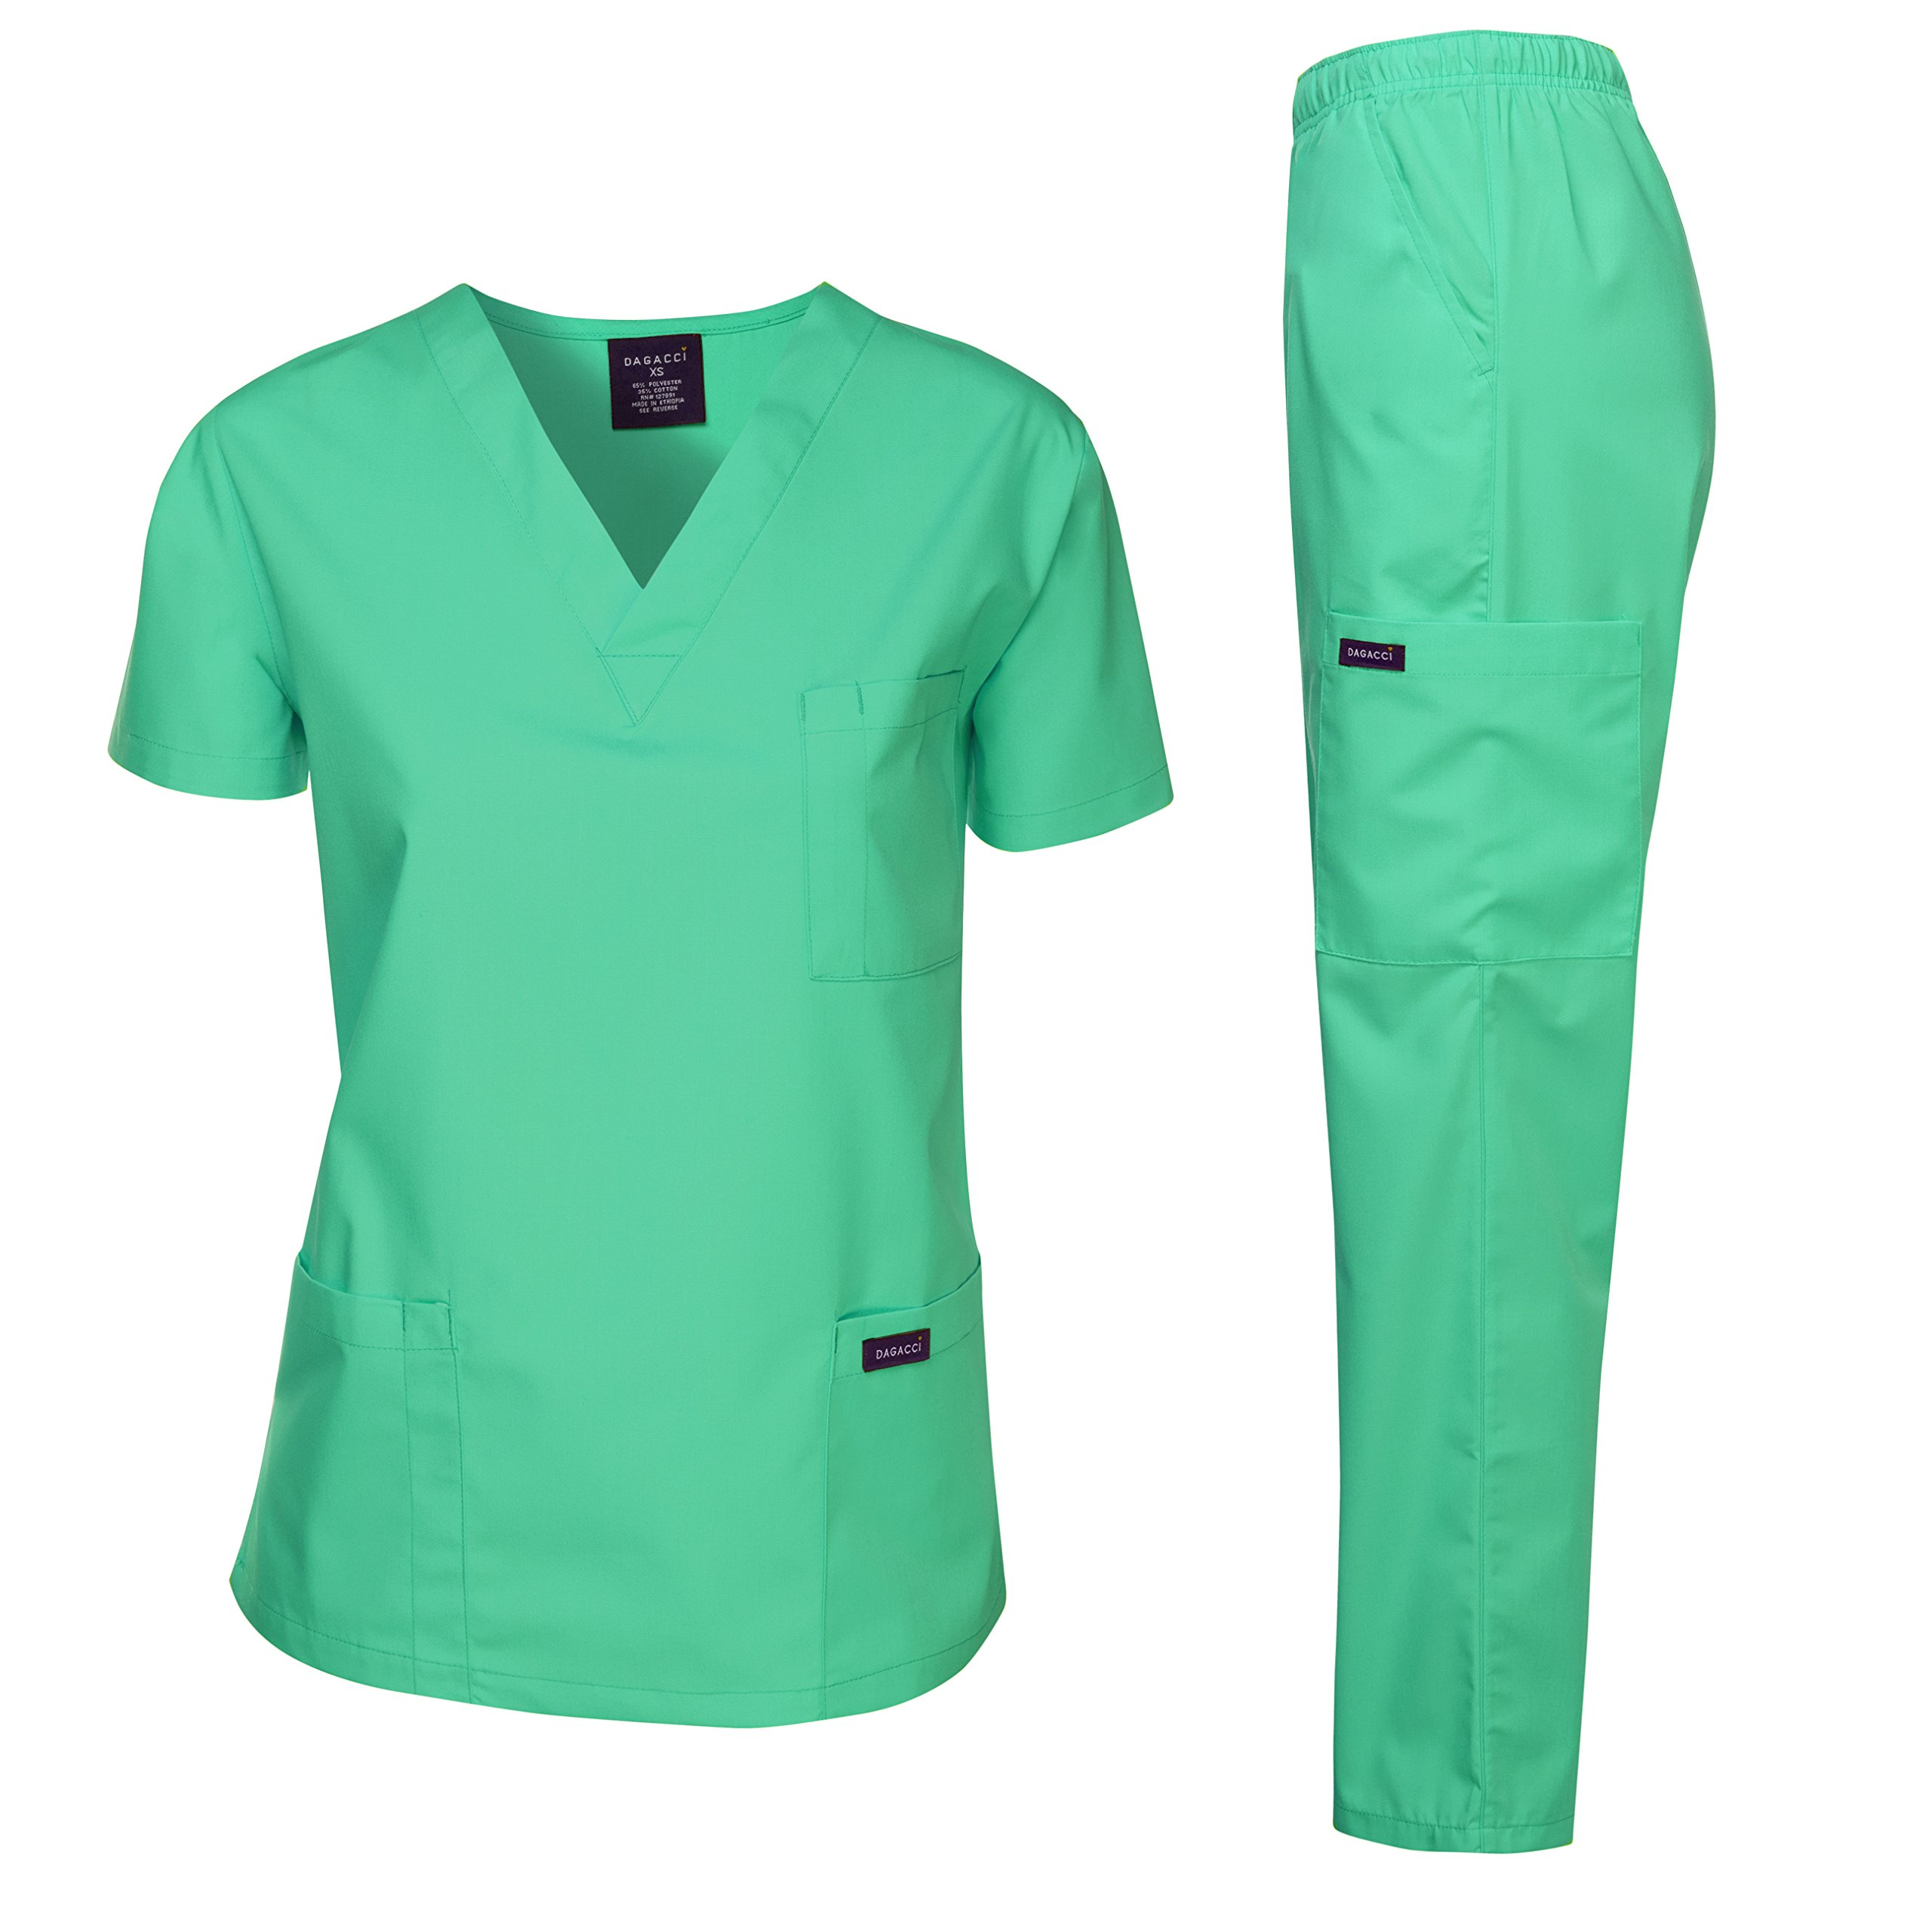 Dagacci Scrubs Medical Uniform Women and Man Scrubs Set Medical Scrubs Top and Pants, Hospital Green, Medium